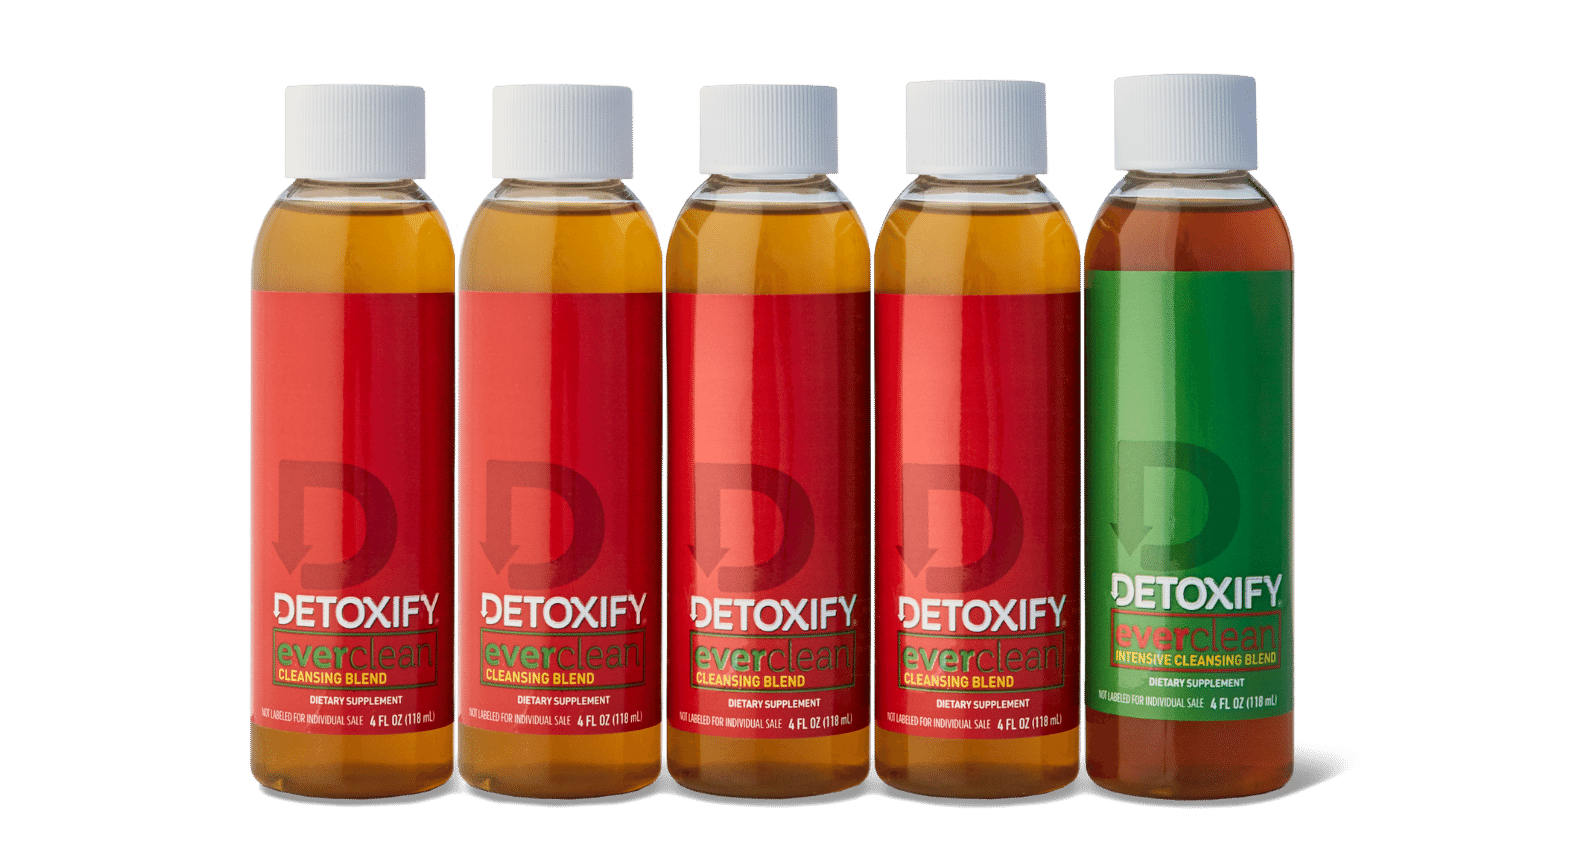 Detoxify Ever Clean is our five-day, long-term herbal cleanse.